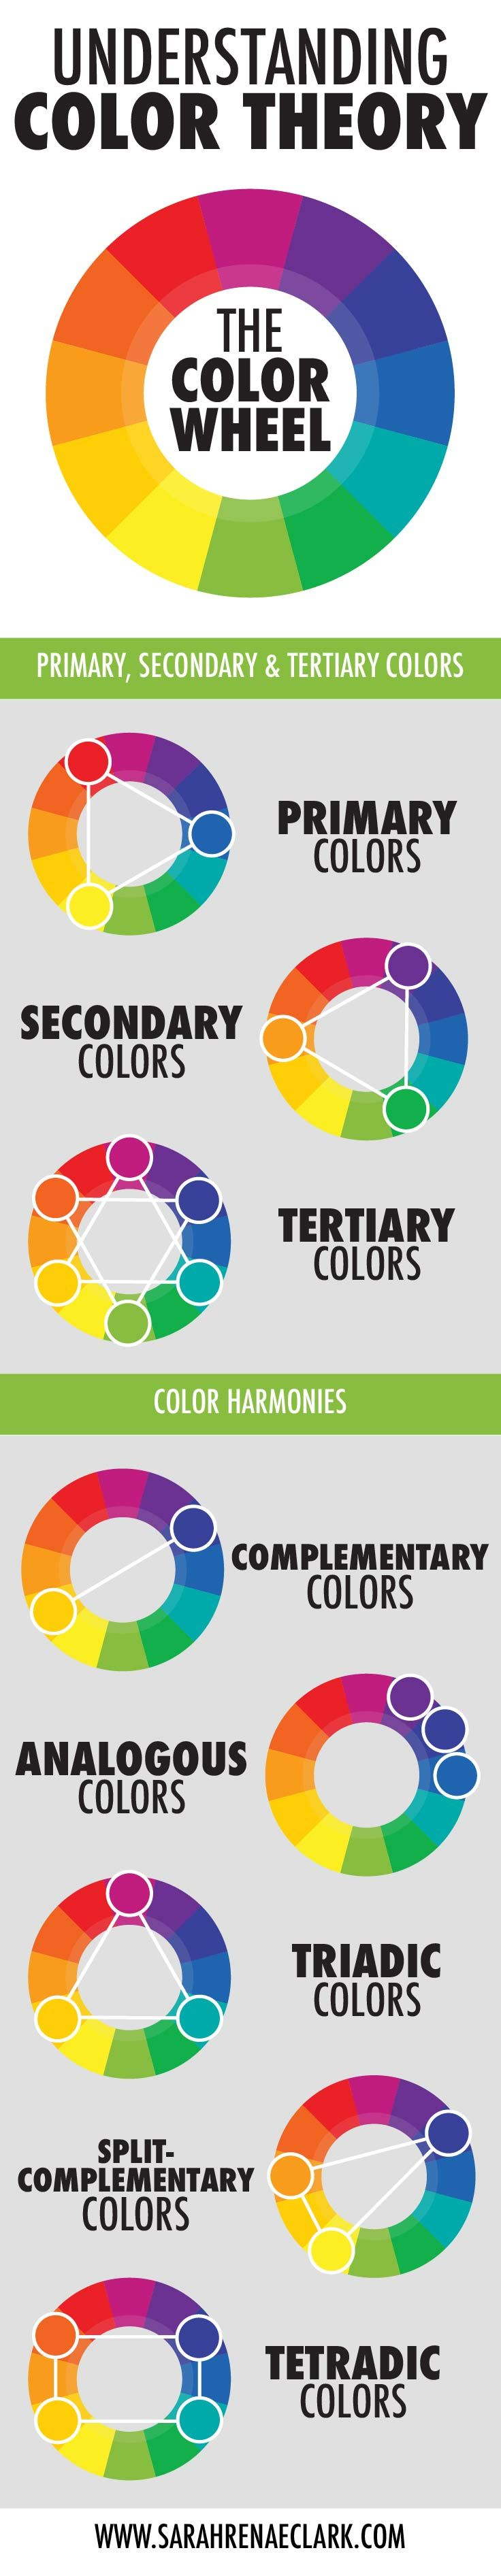 Decoart Blog Color Theory Basics The Color Wheel Color Theory